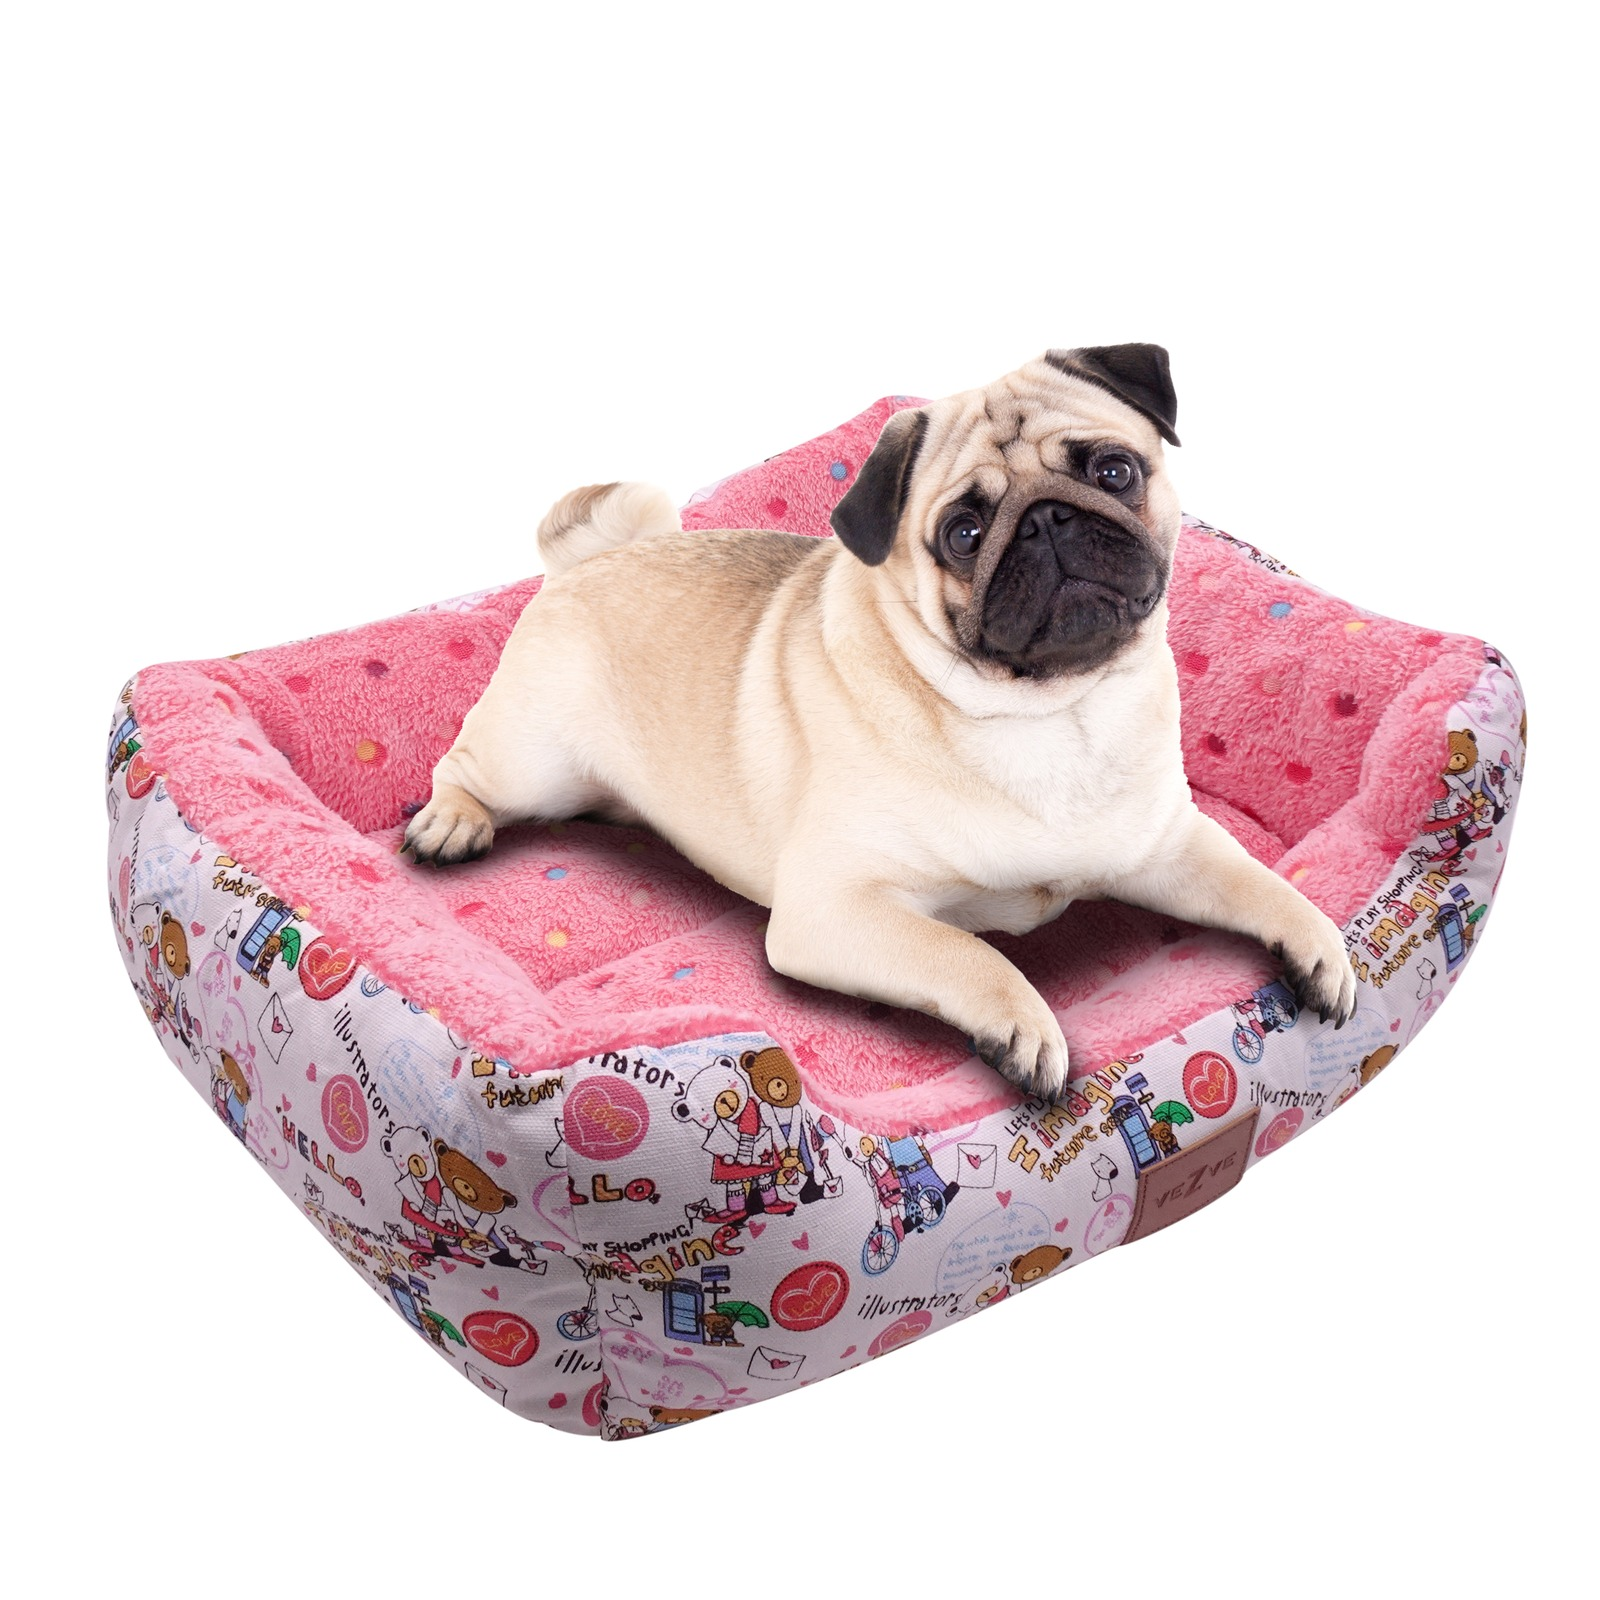 VEZVE Rectangular Soft Dog Beds with Removable Pad Polyester Bed for Resting Warming Calming Sleeping for Small Medium Large Dogs